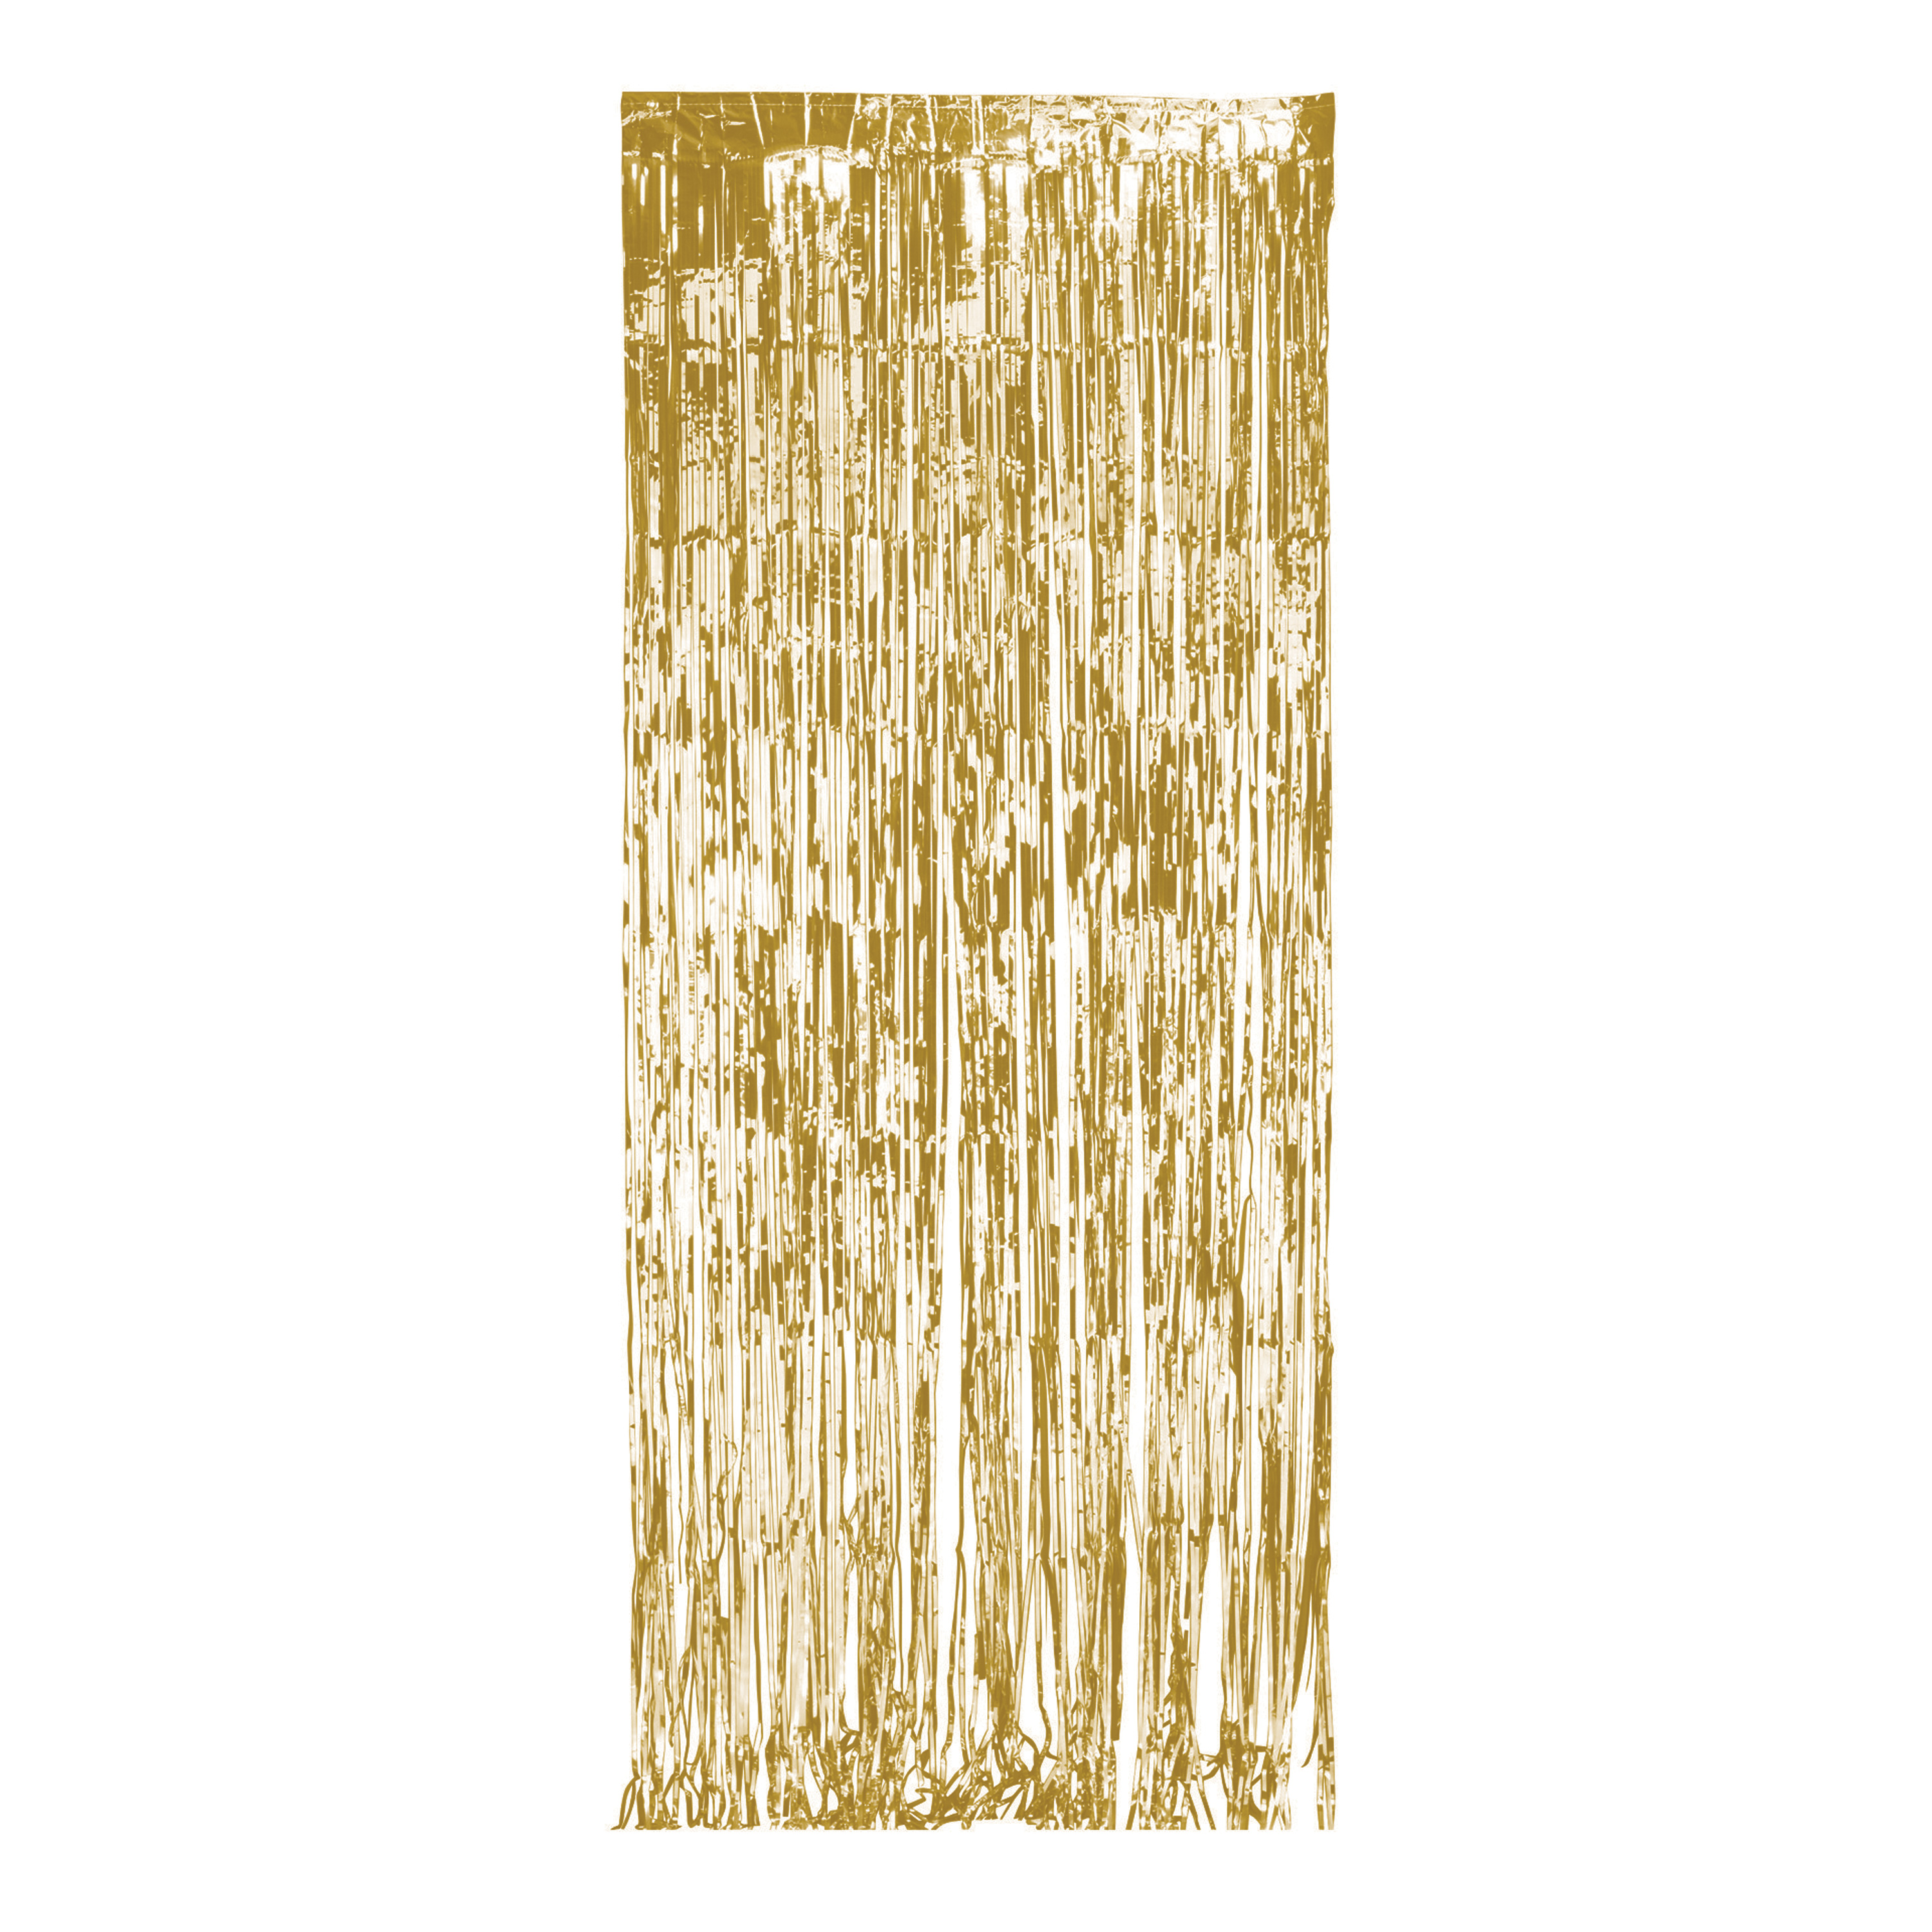 Celebrations Dec Hng 3/1ct Gold Door Fringe